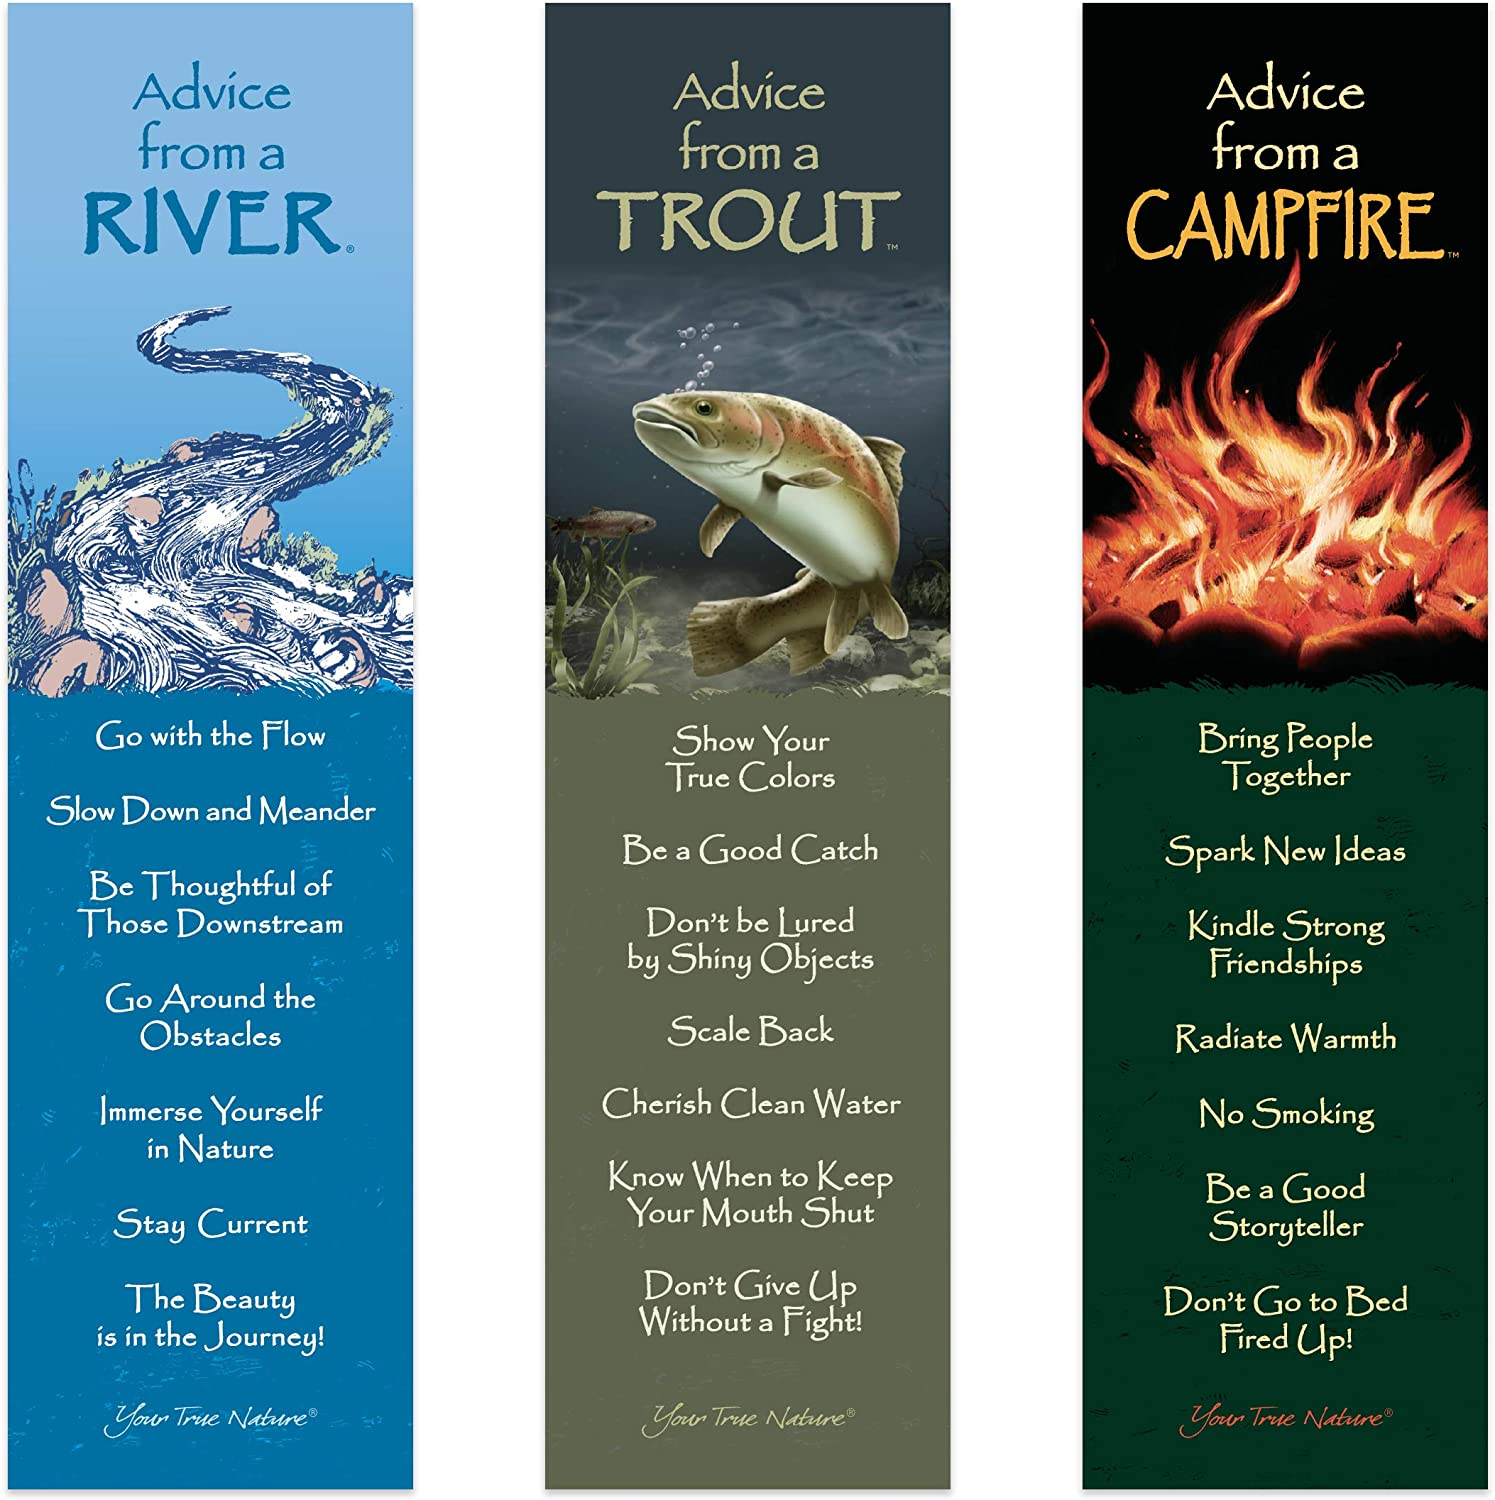 Advice from Nature 3 Bookmark Manly Set - Campfire, Trout, River by Your True Nature